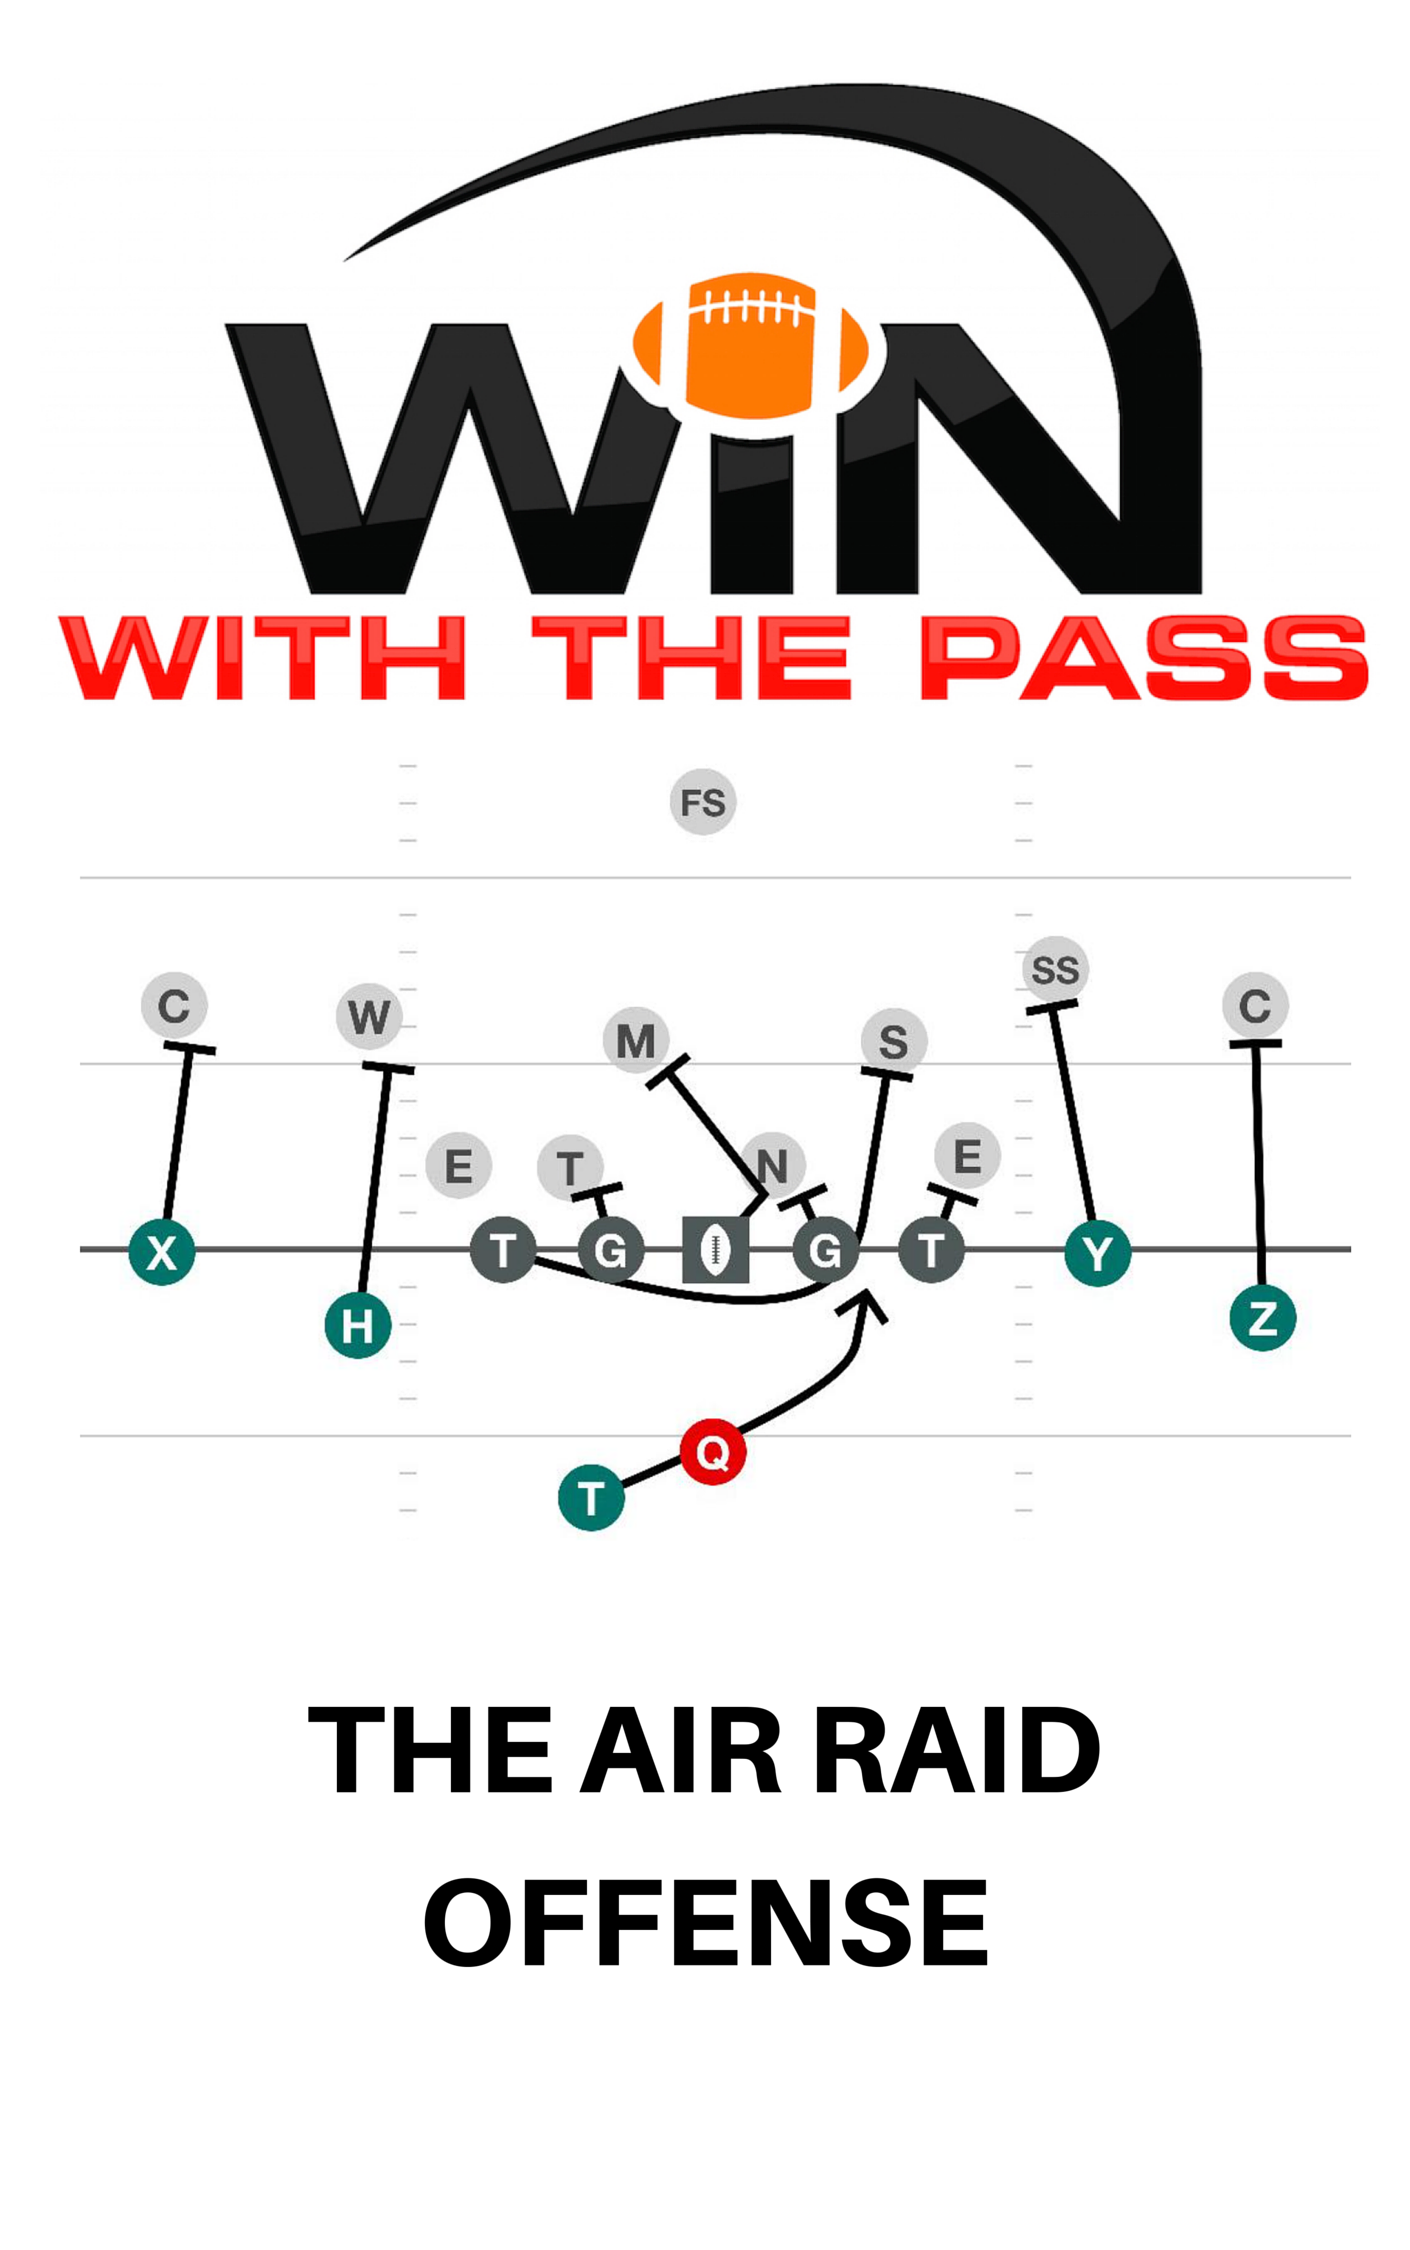 THE SPREAD RUNNING GAME